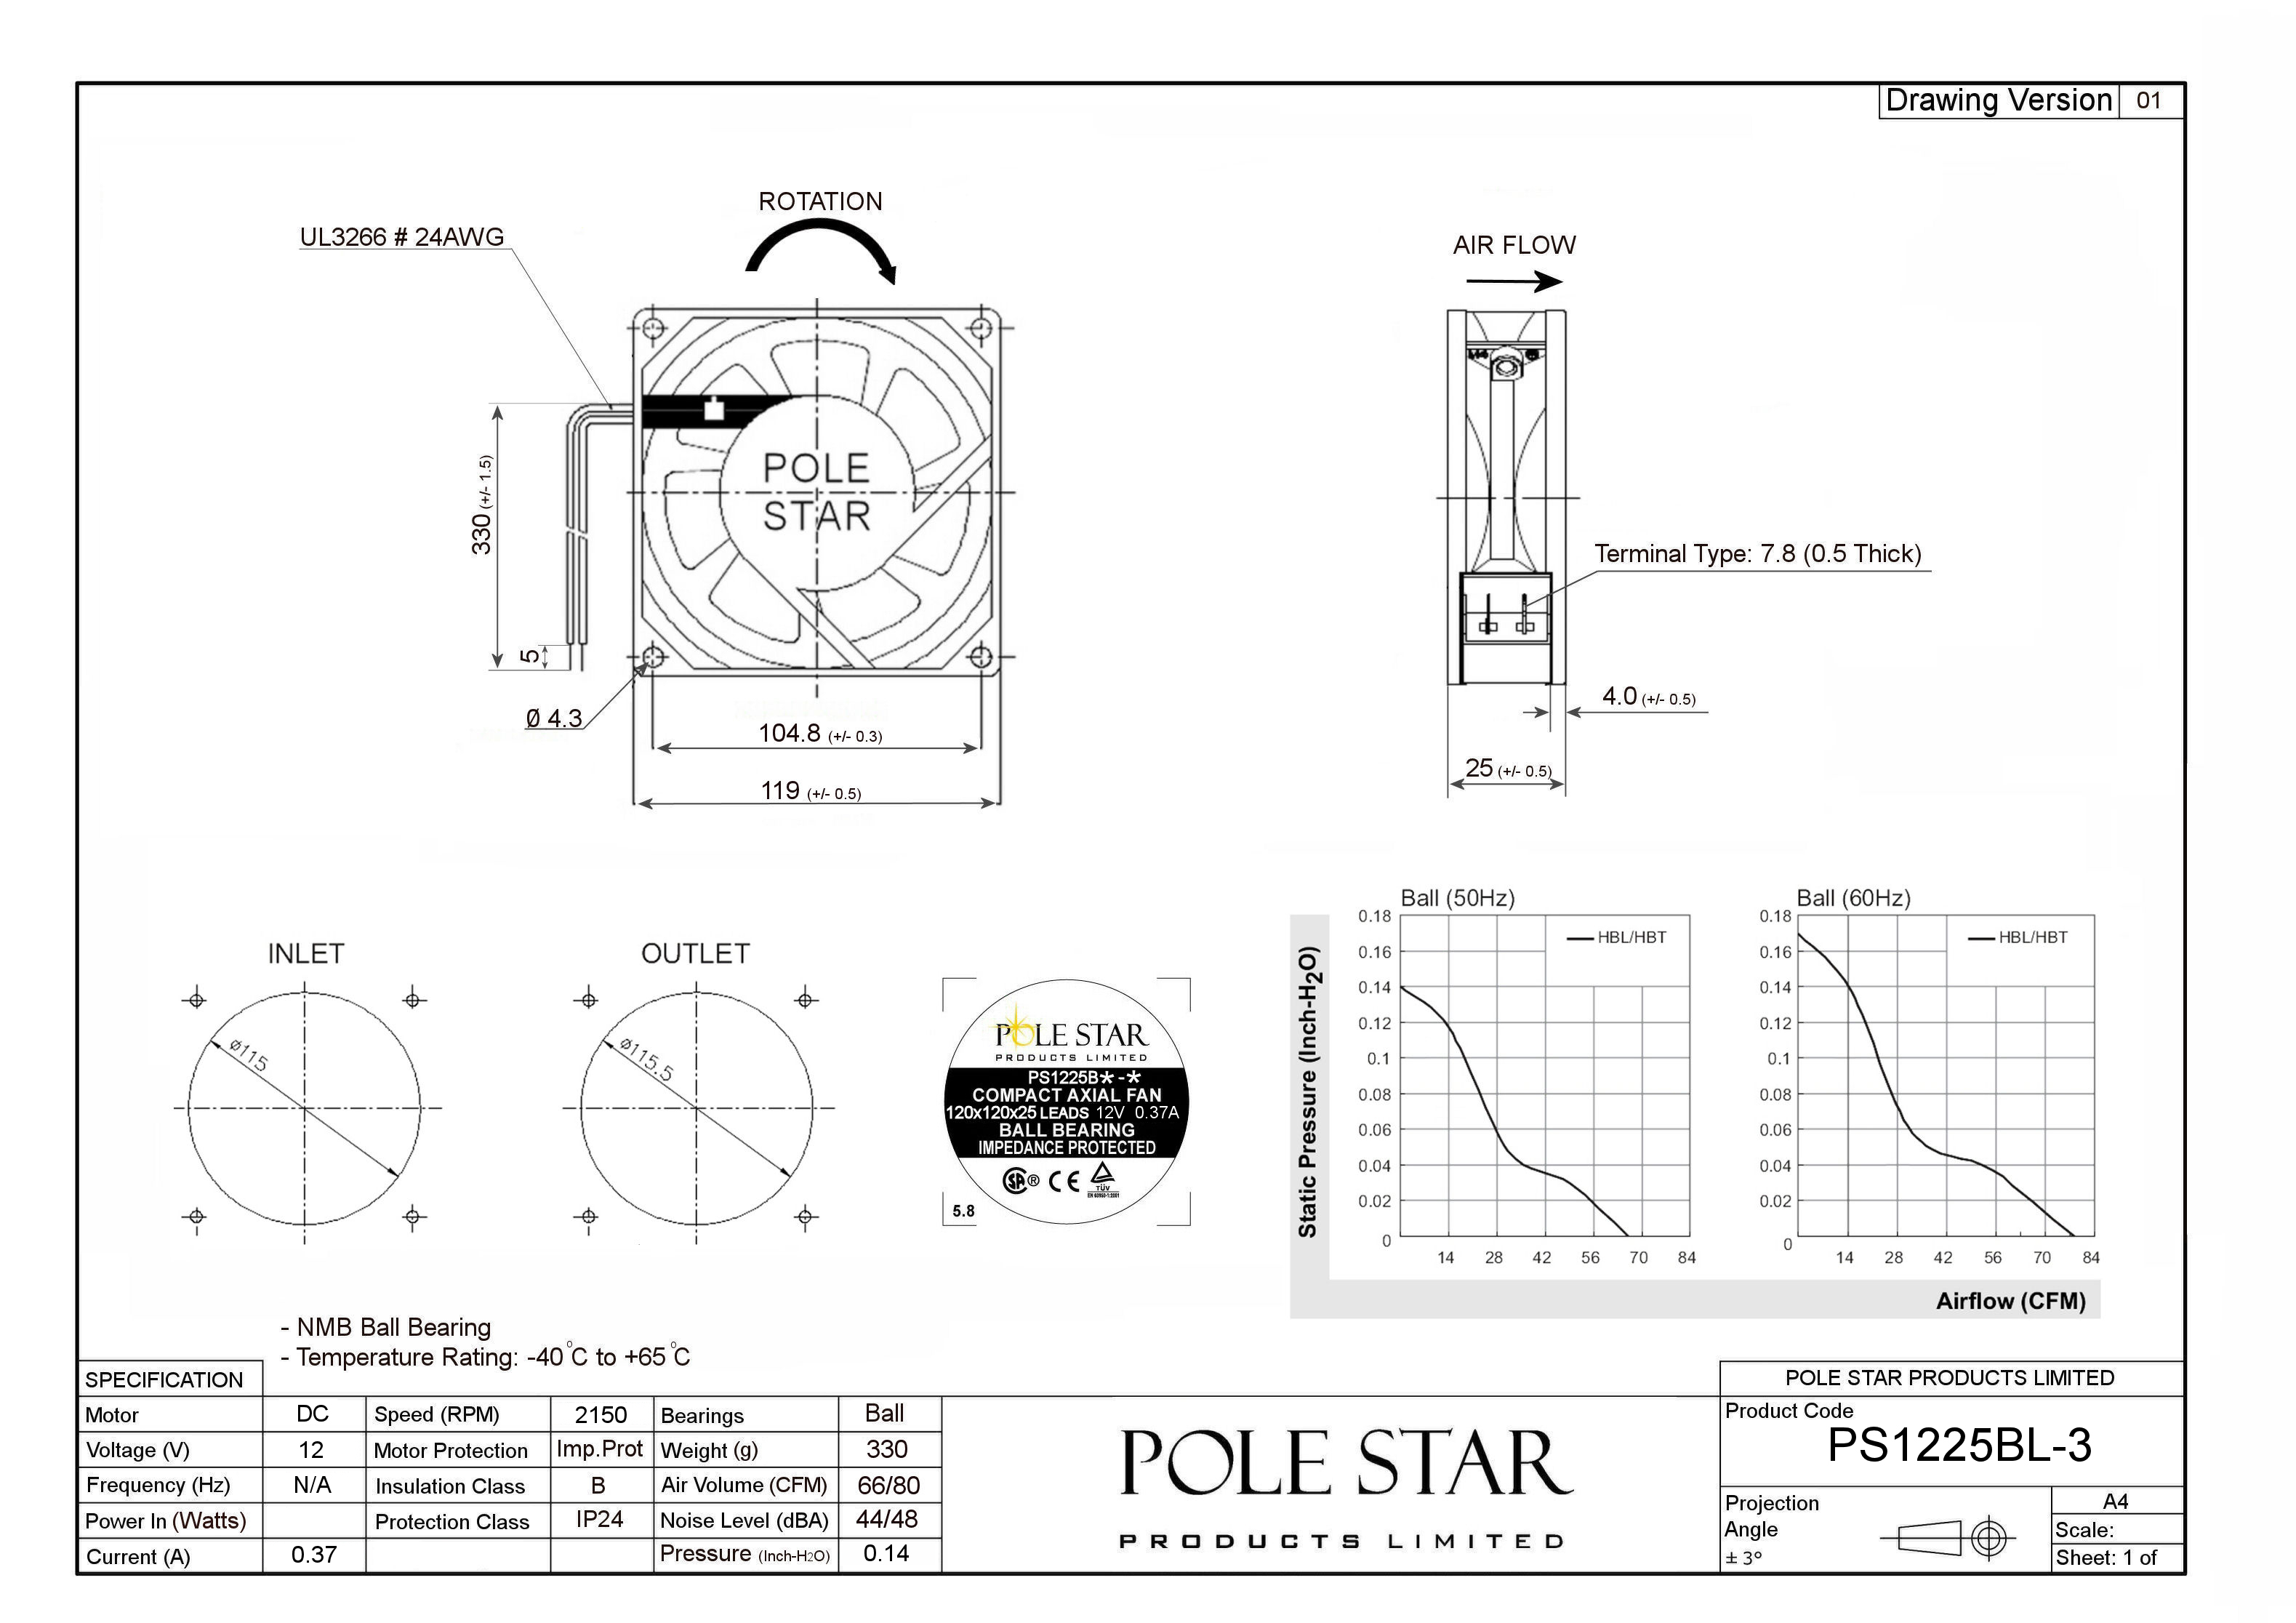 Ps Bl 3 Pole Star Products Limited